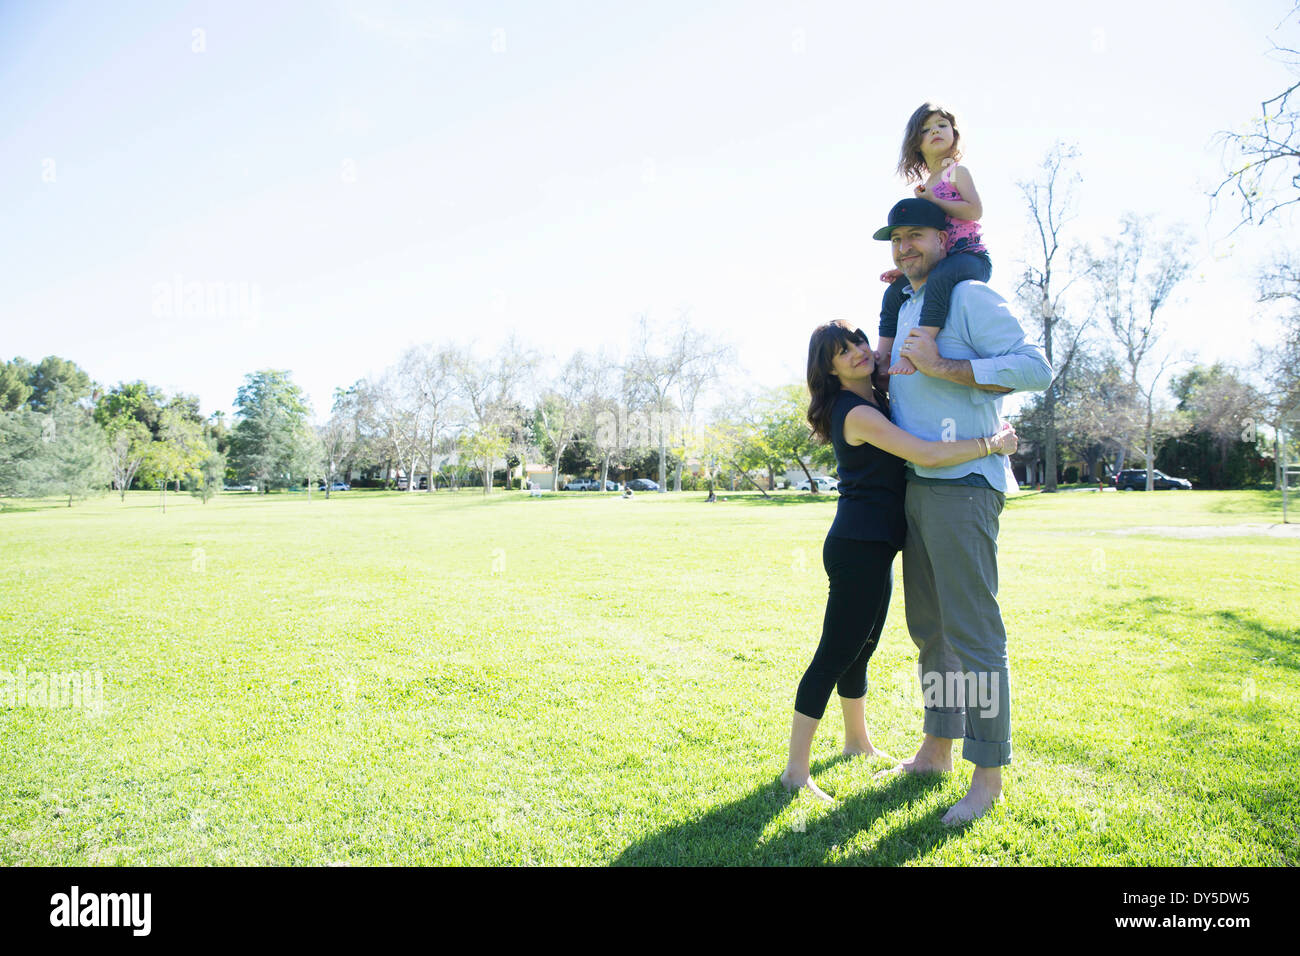 Mid adult couple enjoying the park with young daughter - Stock Image